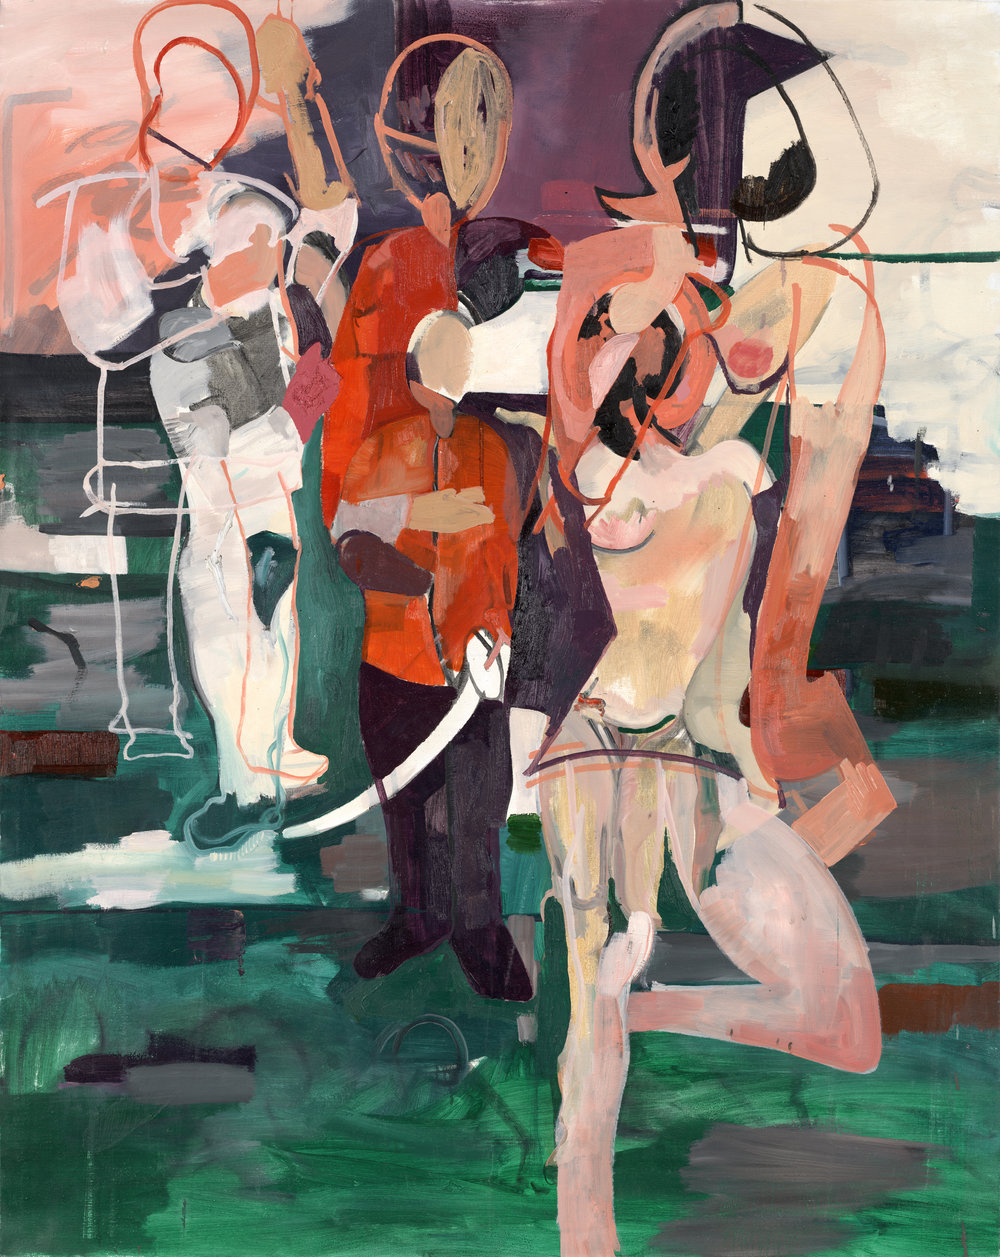 3.The Three, 2011, oil on canvas, 46 x 58 in.jpg